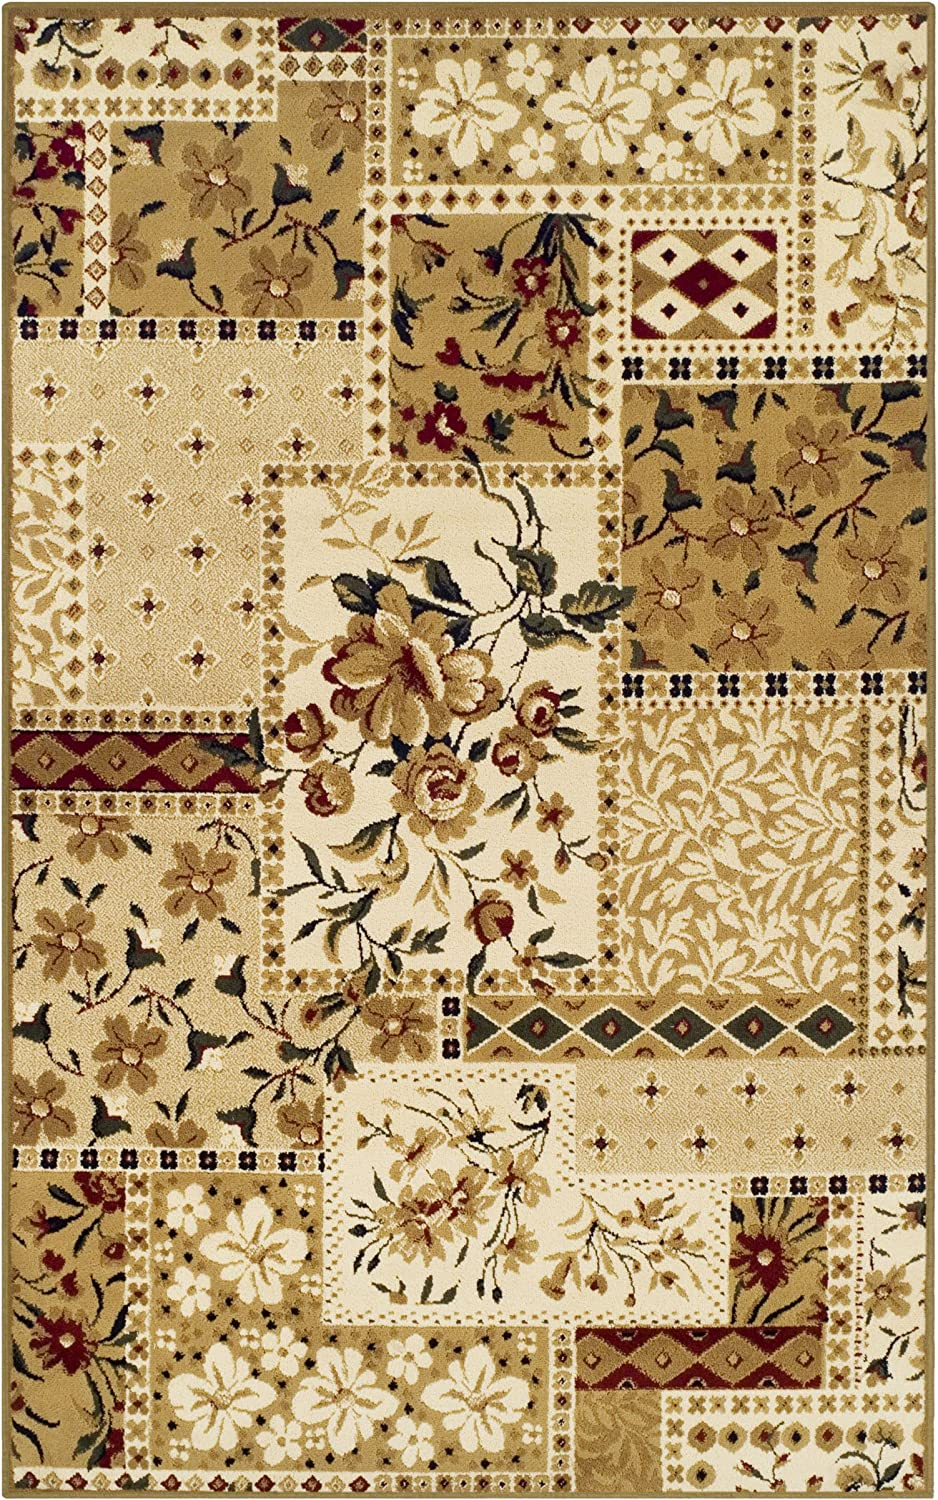 SUPERIOR Flower Patch Collection Area Rug, Beautiful Floral Patchwork Design, 10mm Pile Height with Jute Backing - 2' x 3' Rug, Multi -Color